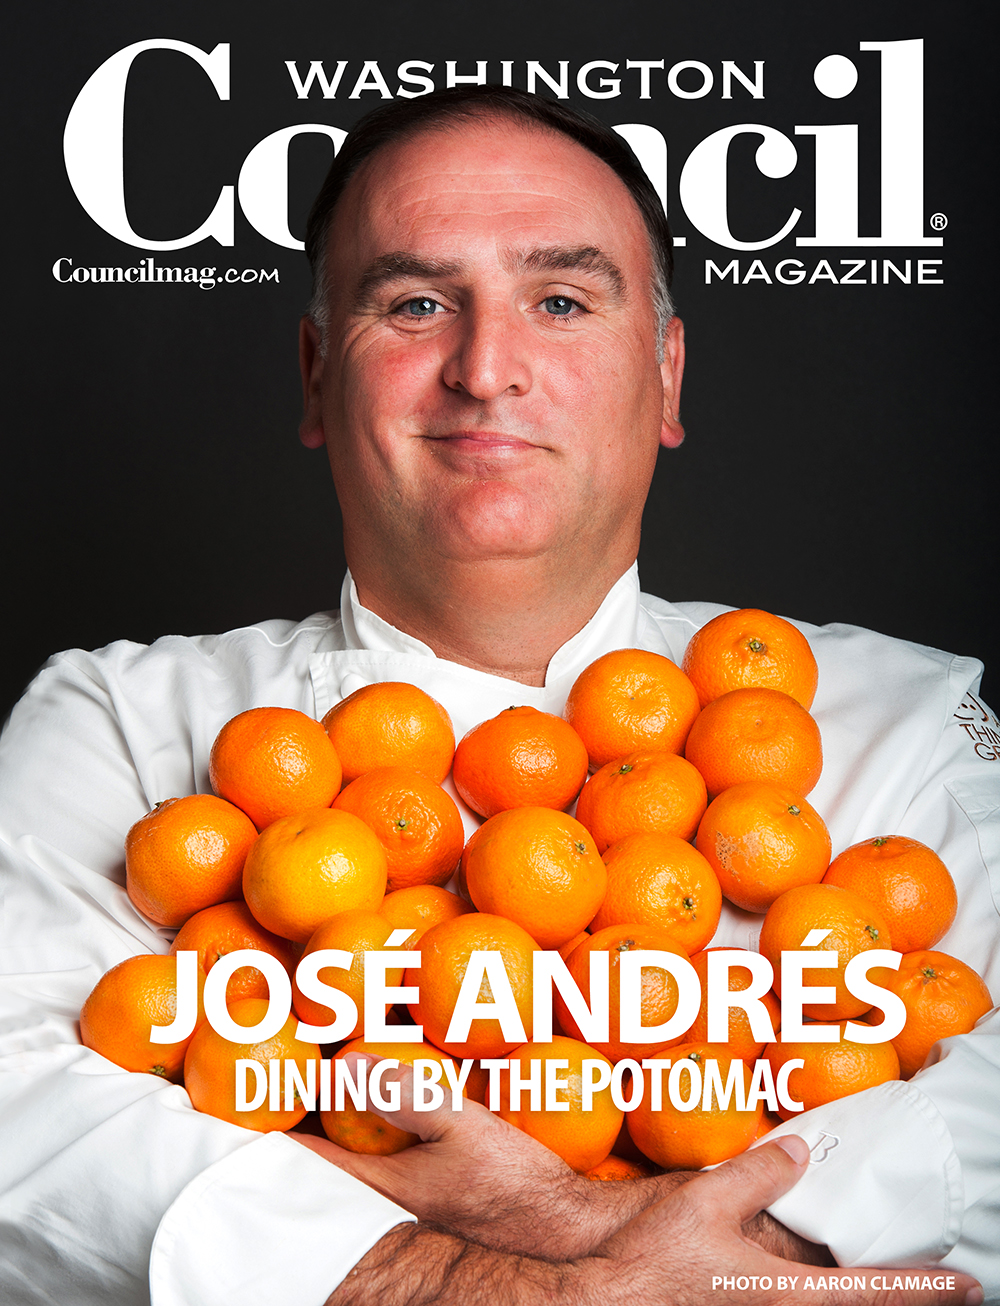 'I absolutely love seafood – I am from a region in Spain with some of the best in the world – and the Chesapeake really has an amazing bounty right here in our backyard.' - – Chef José Andrés